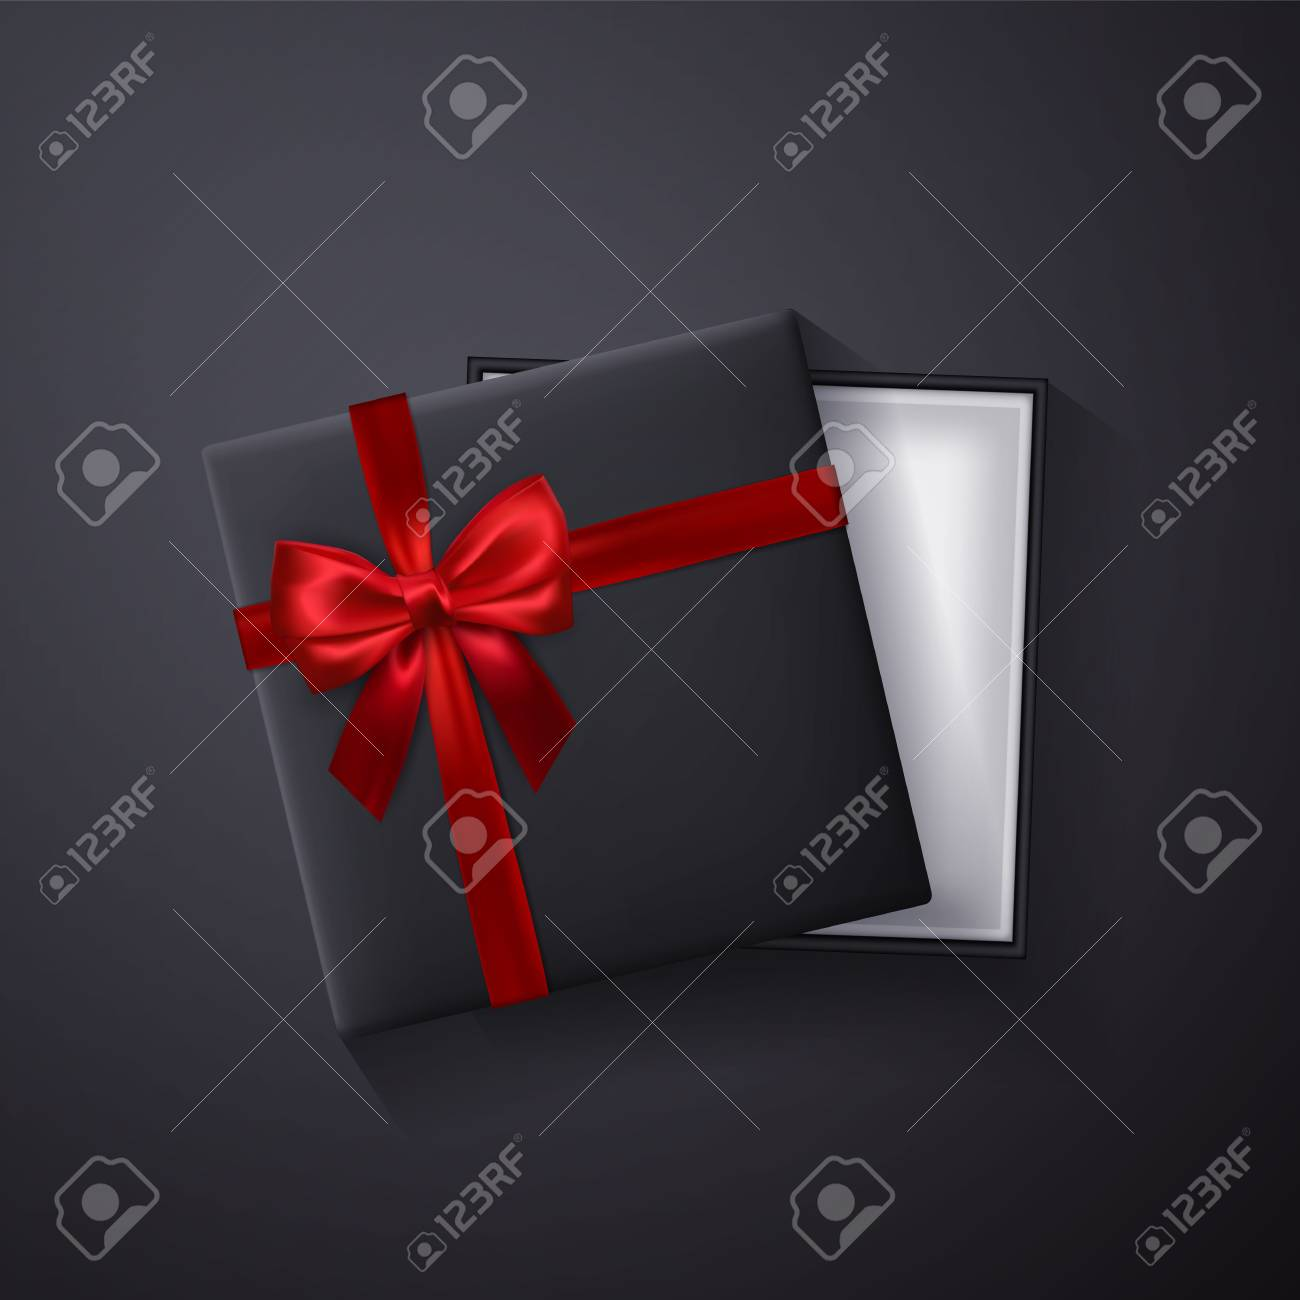 Open black empty gift box with red bow and ribbon on dark background. Top view. Template for your presentation, banner or poster. Vector illustration. - 125779275